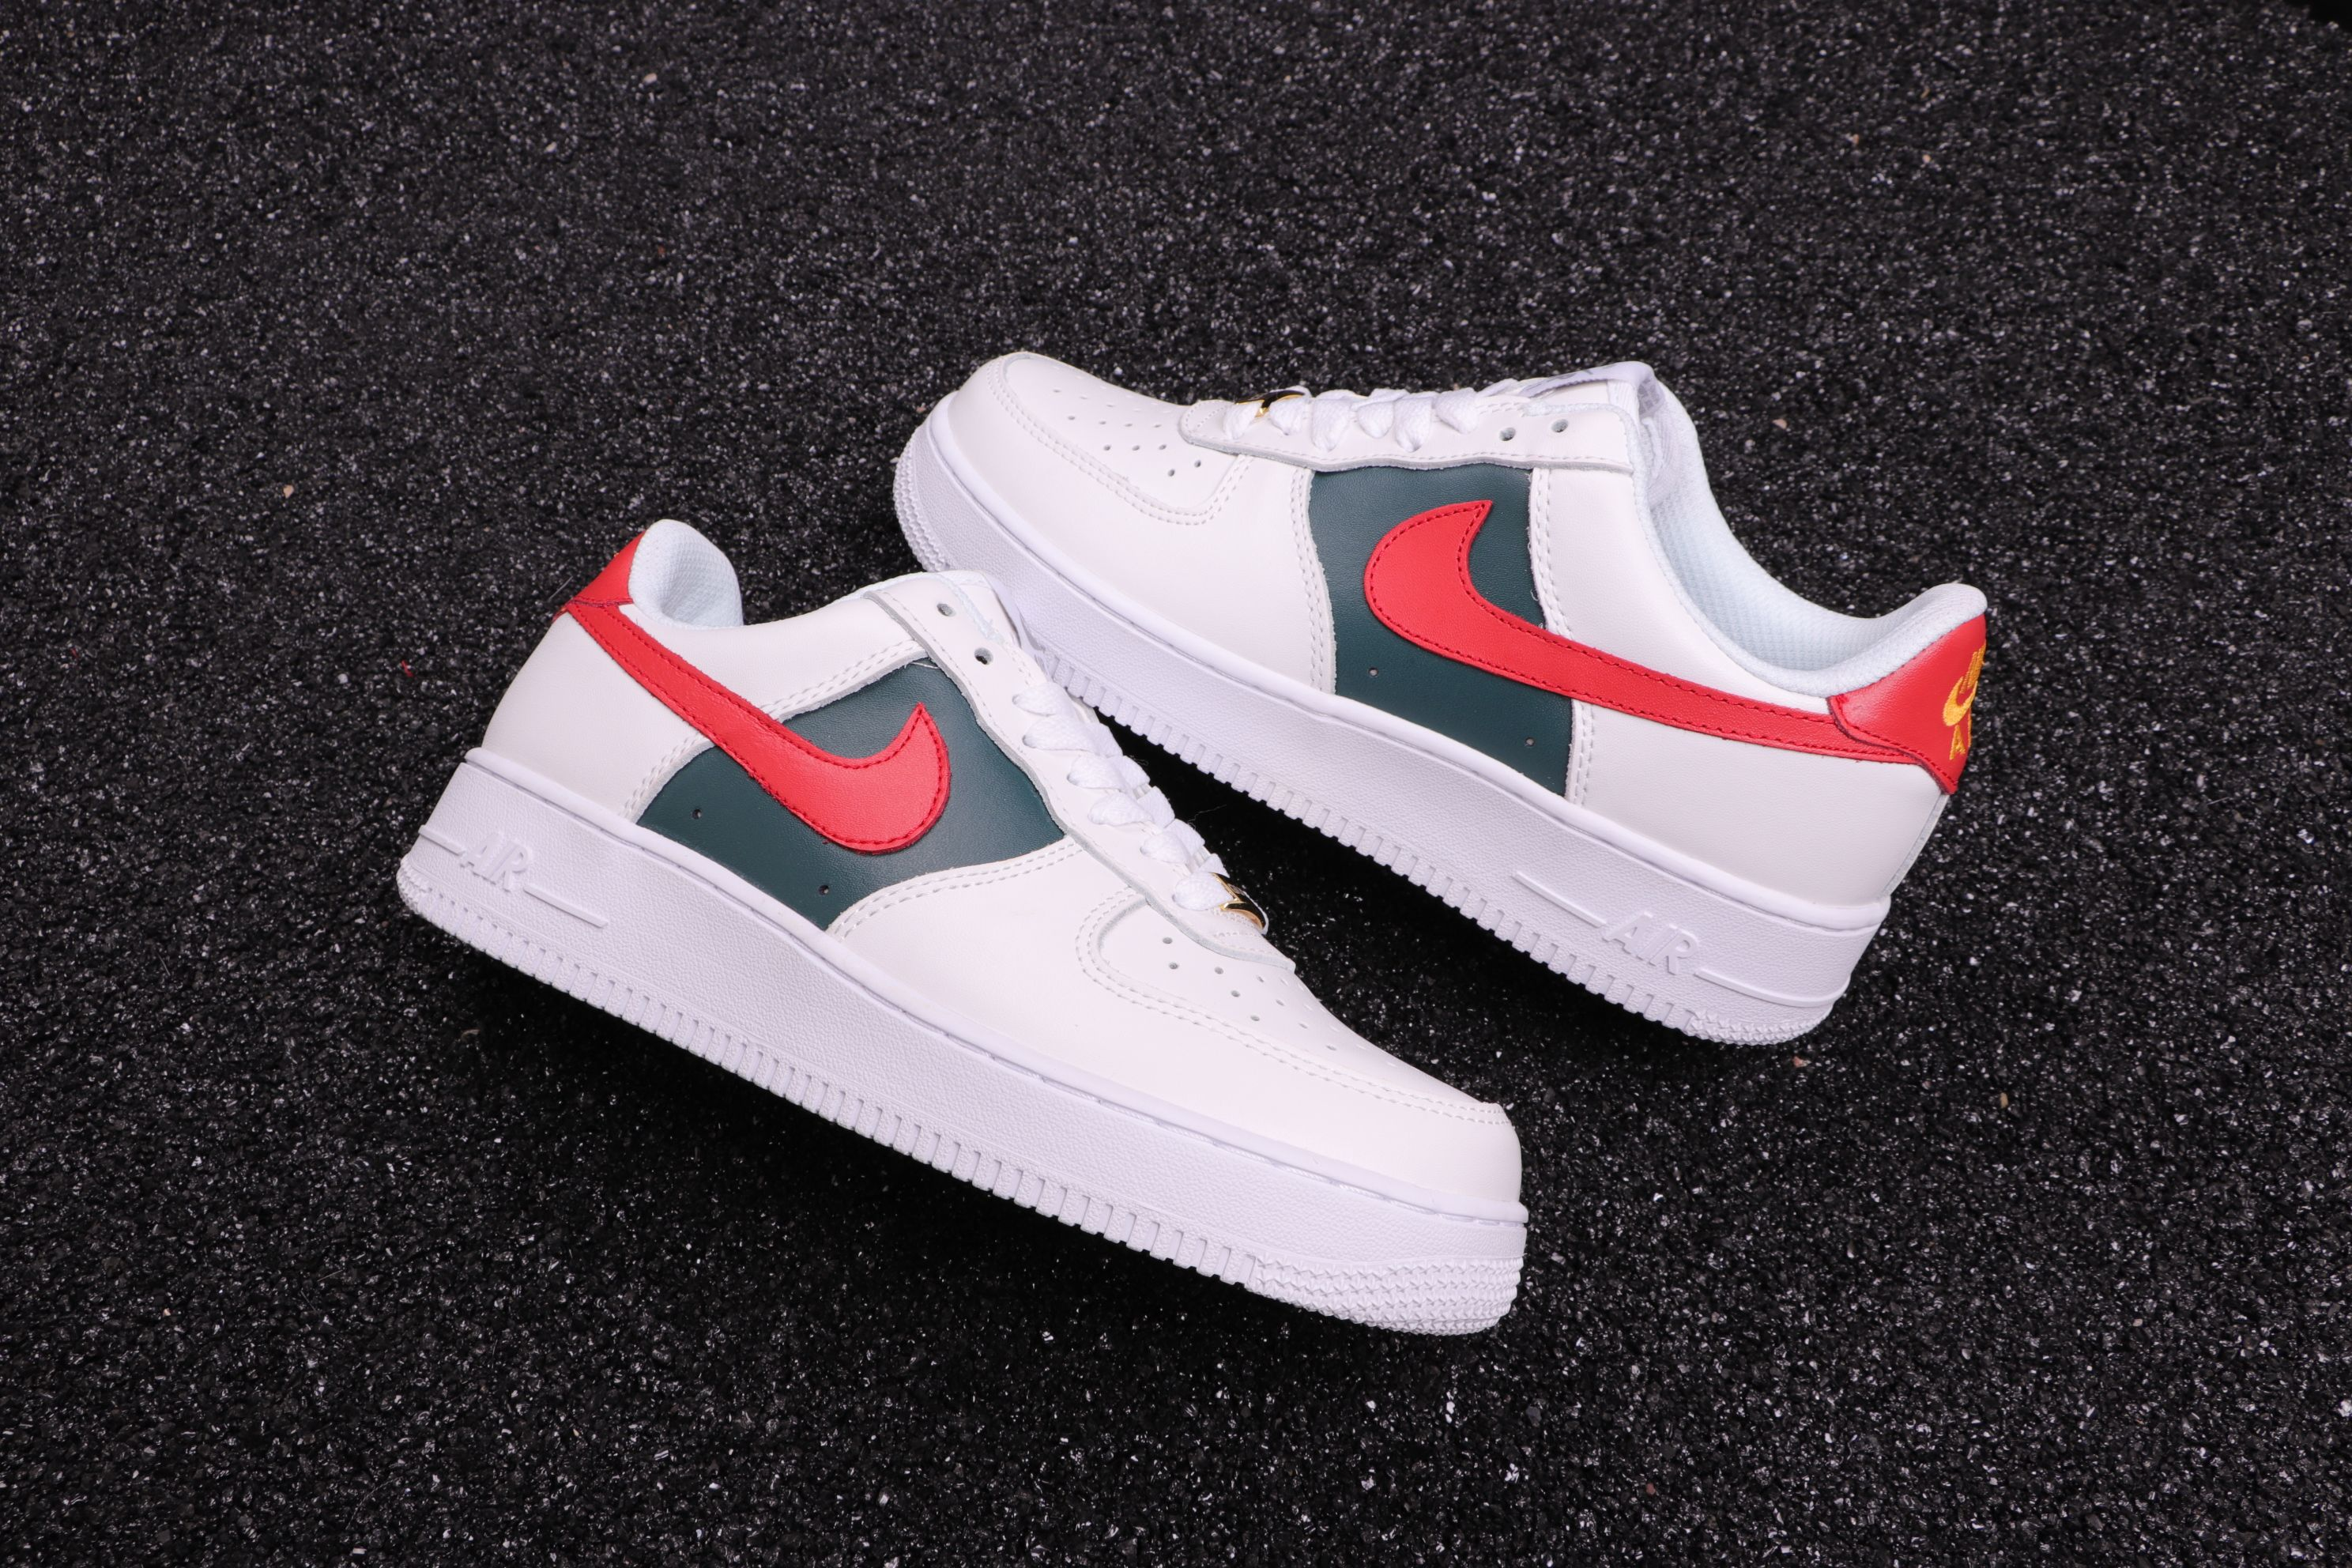 e5b01c898593fc Custom Gucci x Nike Air Force 1 Low Red and Green Stripes ...